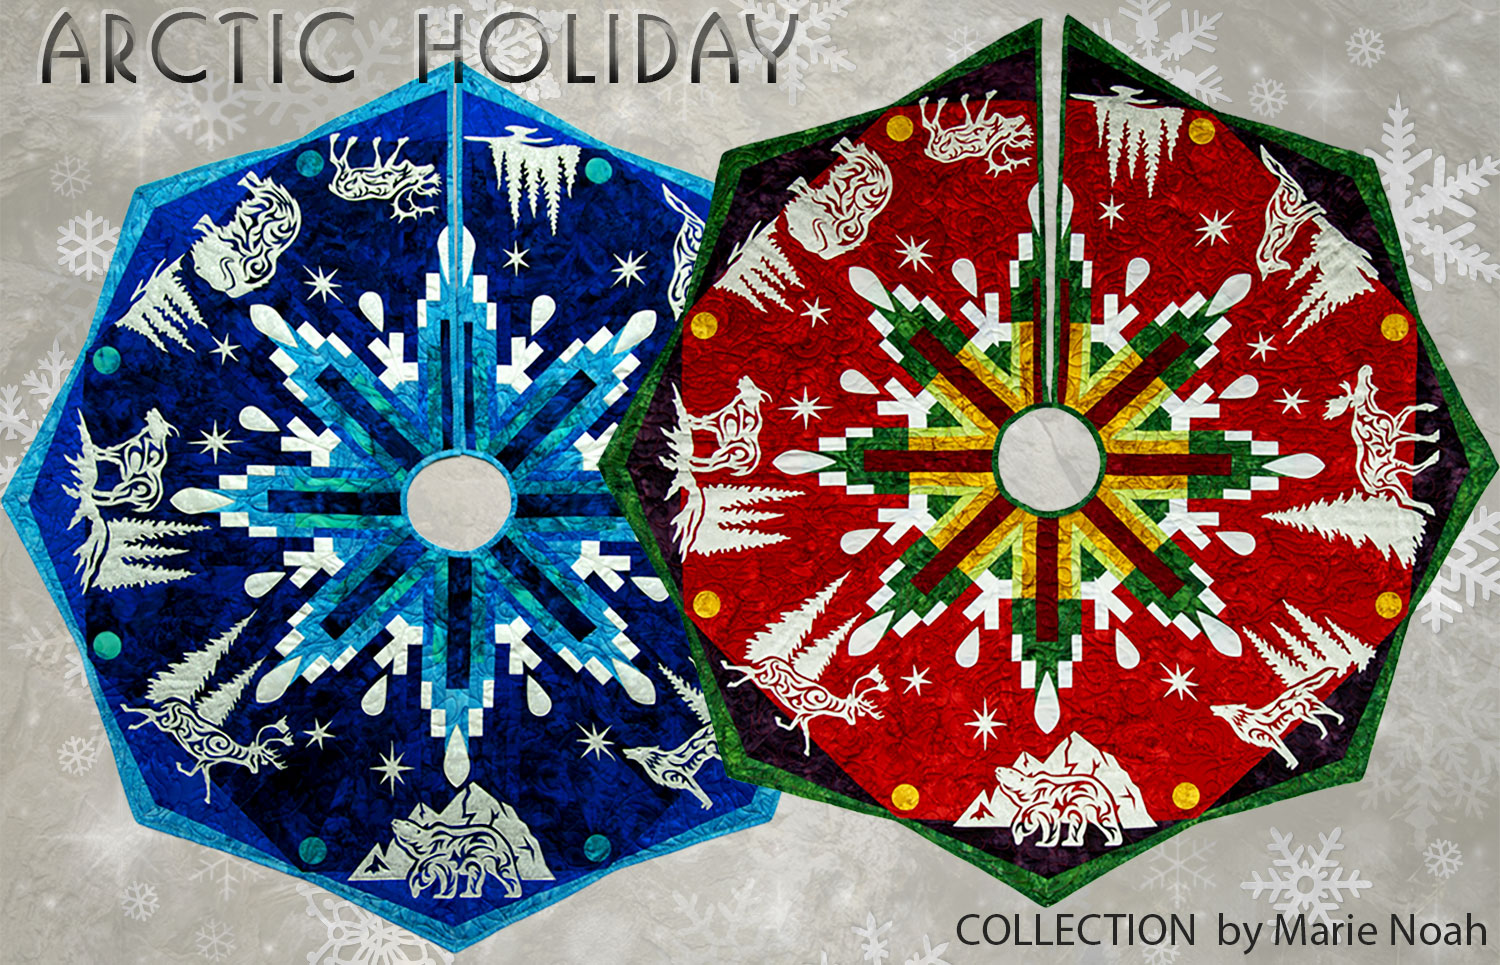 Arctic Holiday Tree Skirt Laser Cut Appliques, Kits and Patterns by Marie Noah